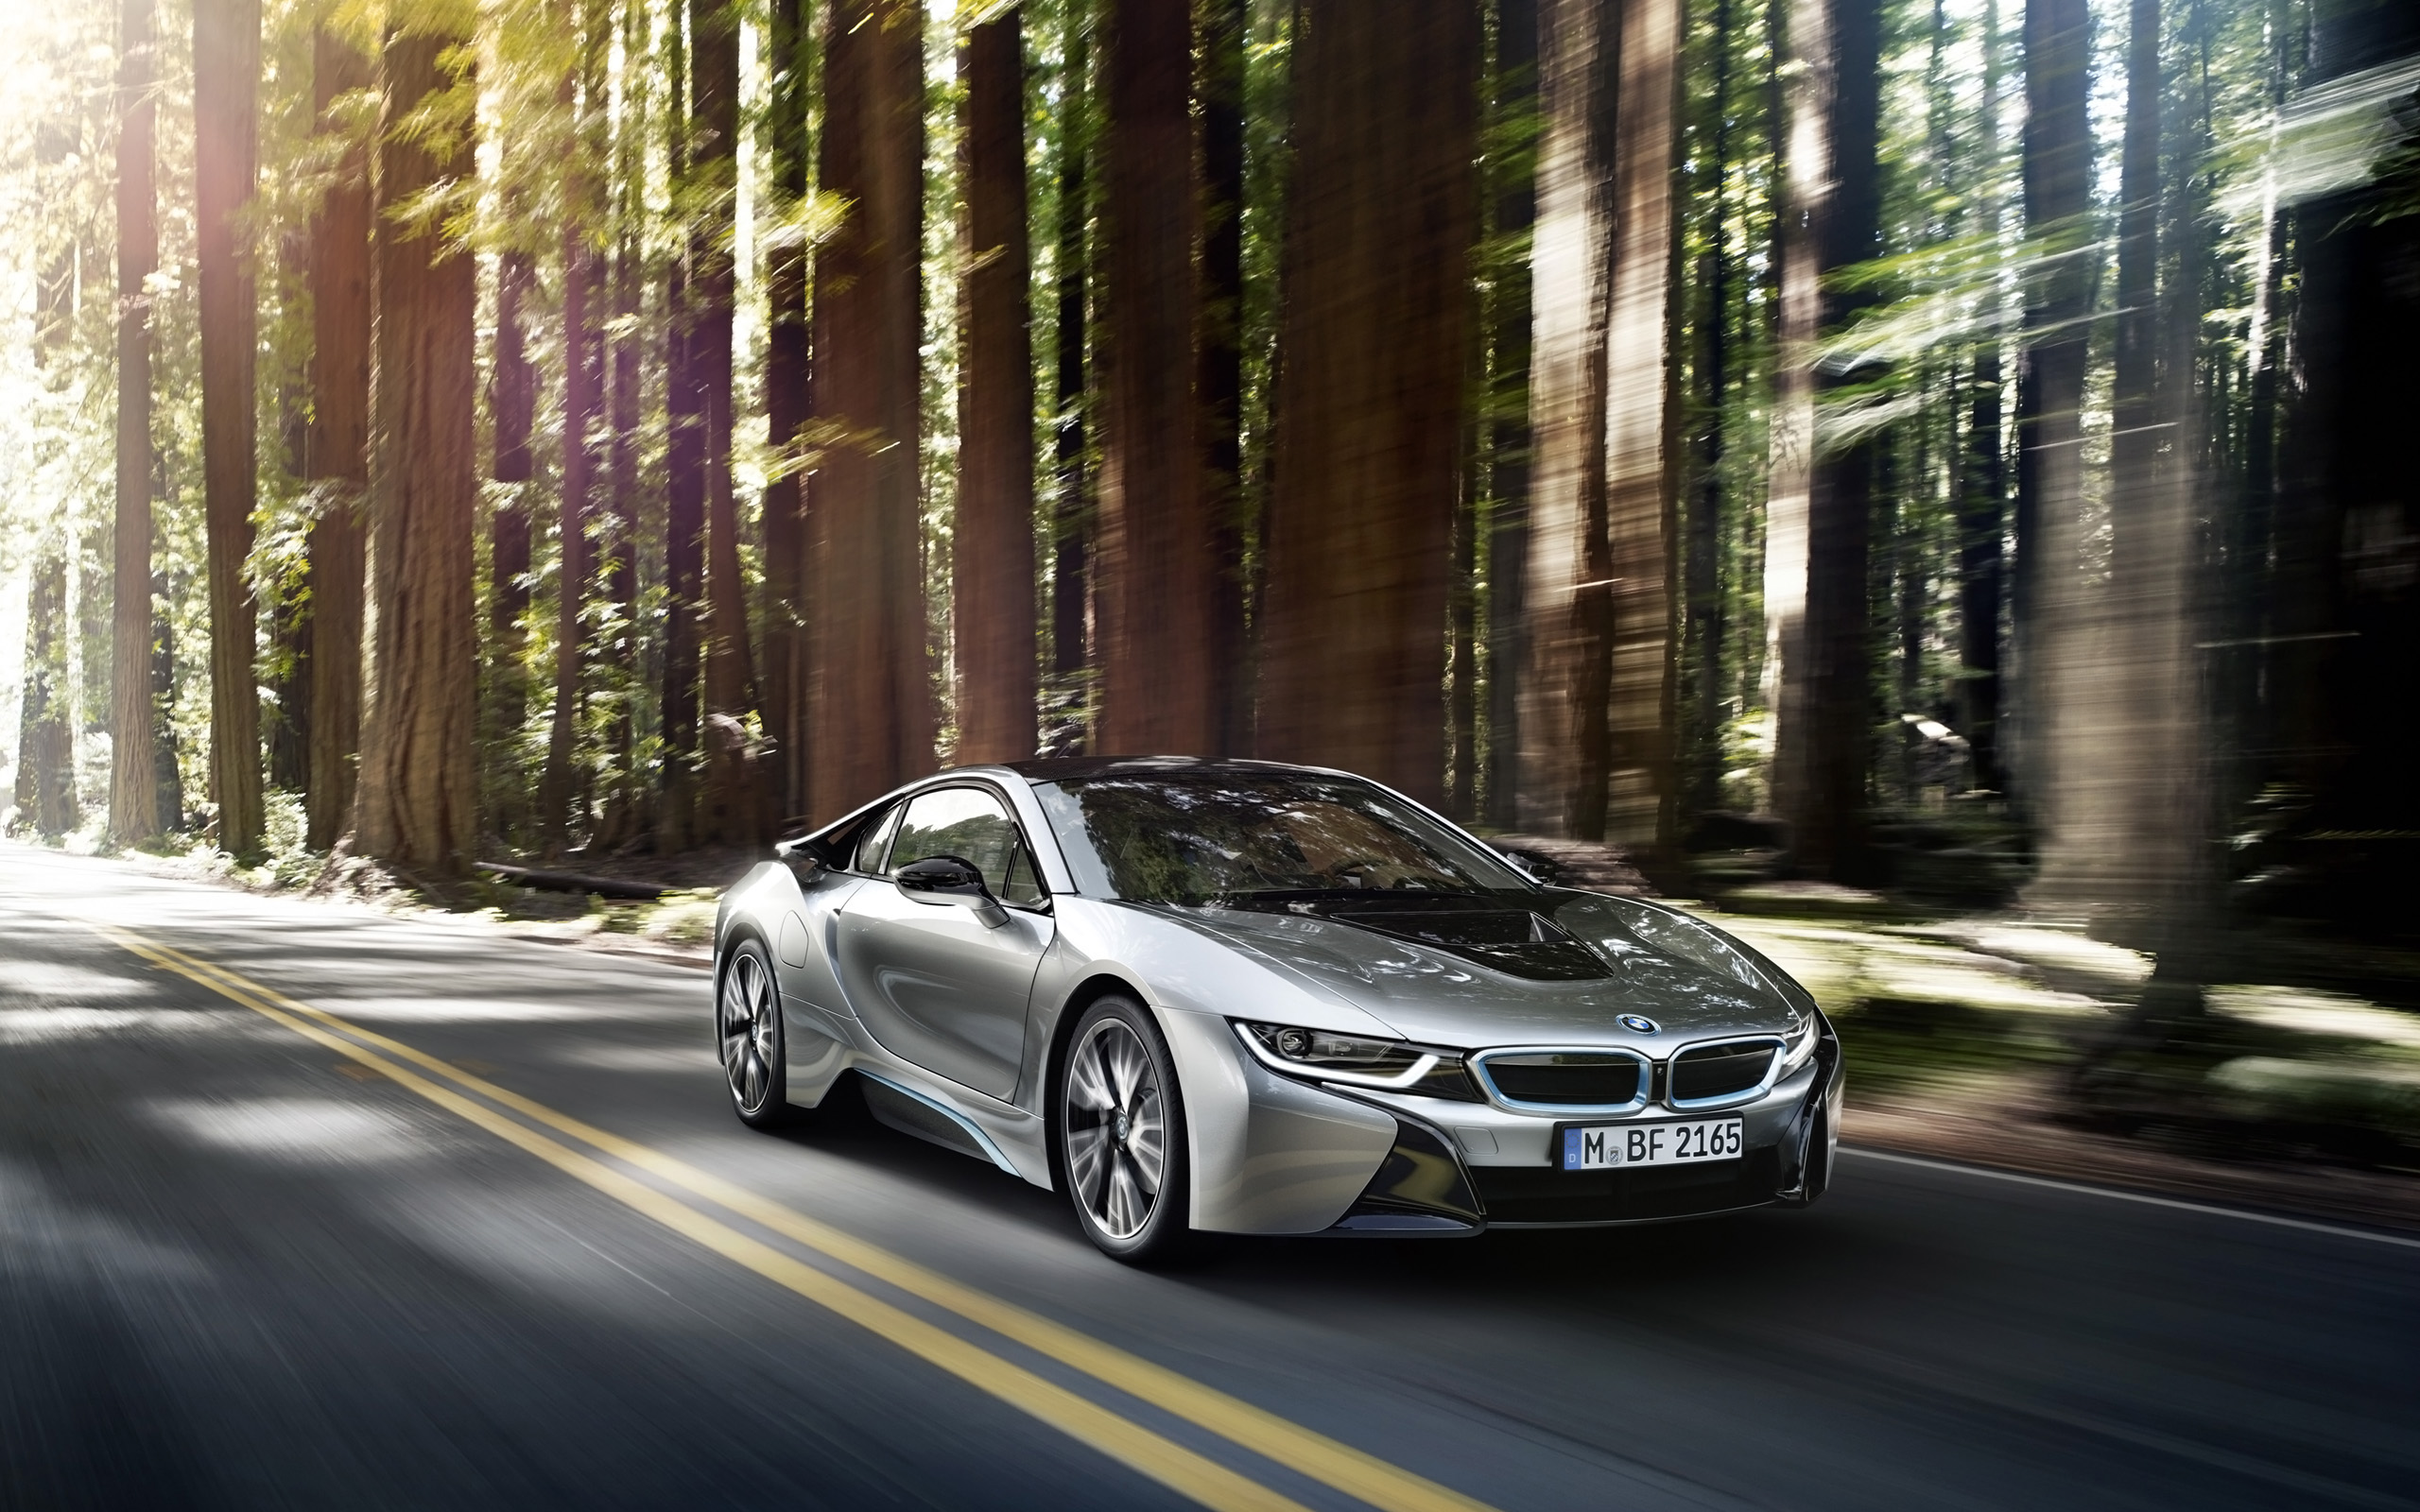 2015 Bmw I8 3 Wallpaper Hd Car Wallpapers Id 3712